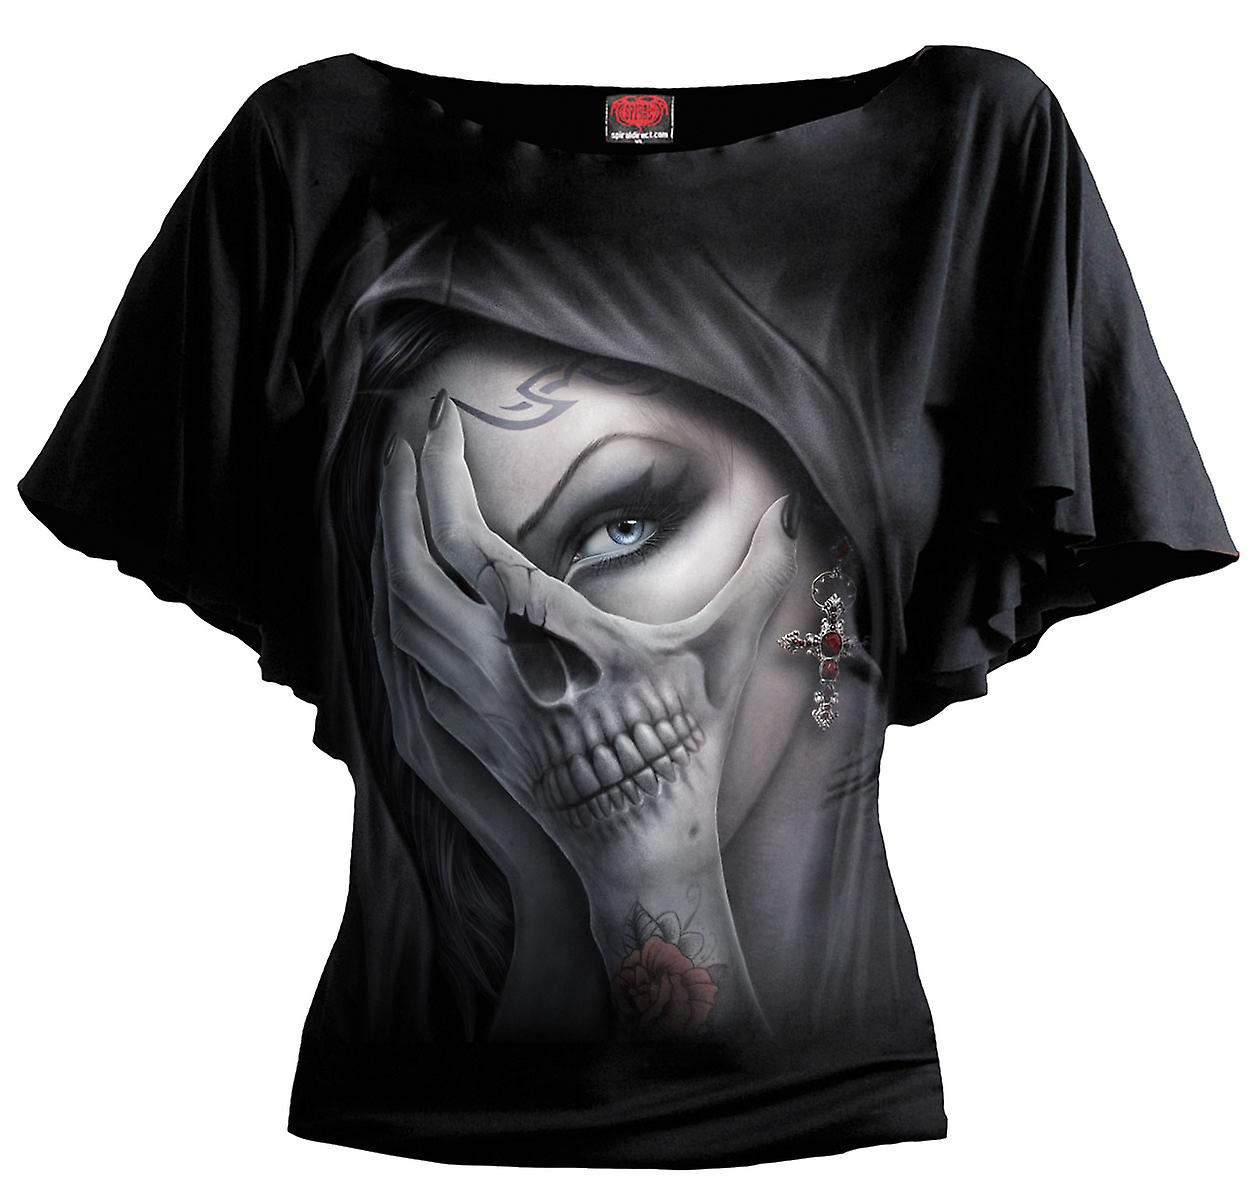 Spiral Direct Gothic DEAD HAND - Boat Neck Bat Sleeve Top Black|Skulls|Vixen|Cross|Gothic